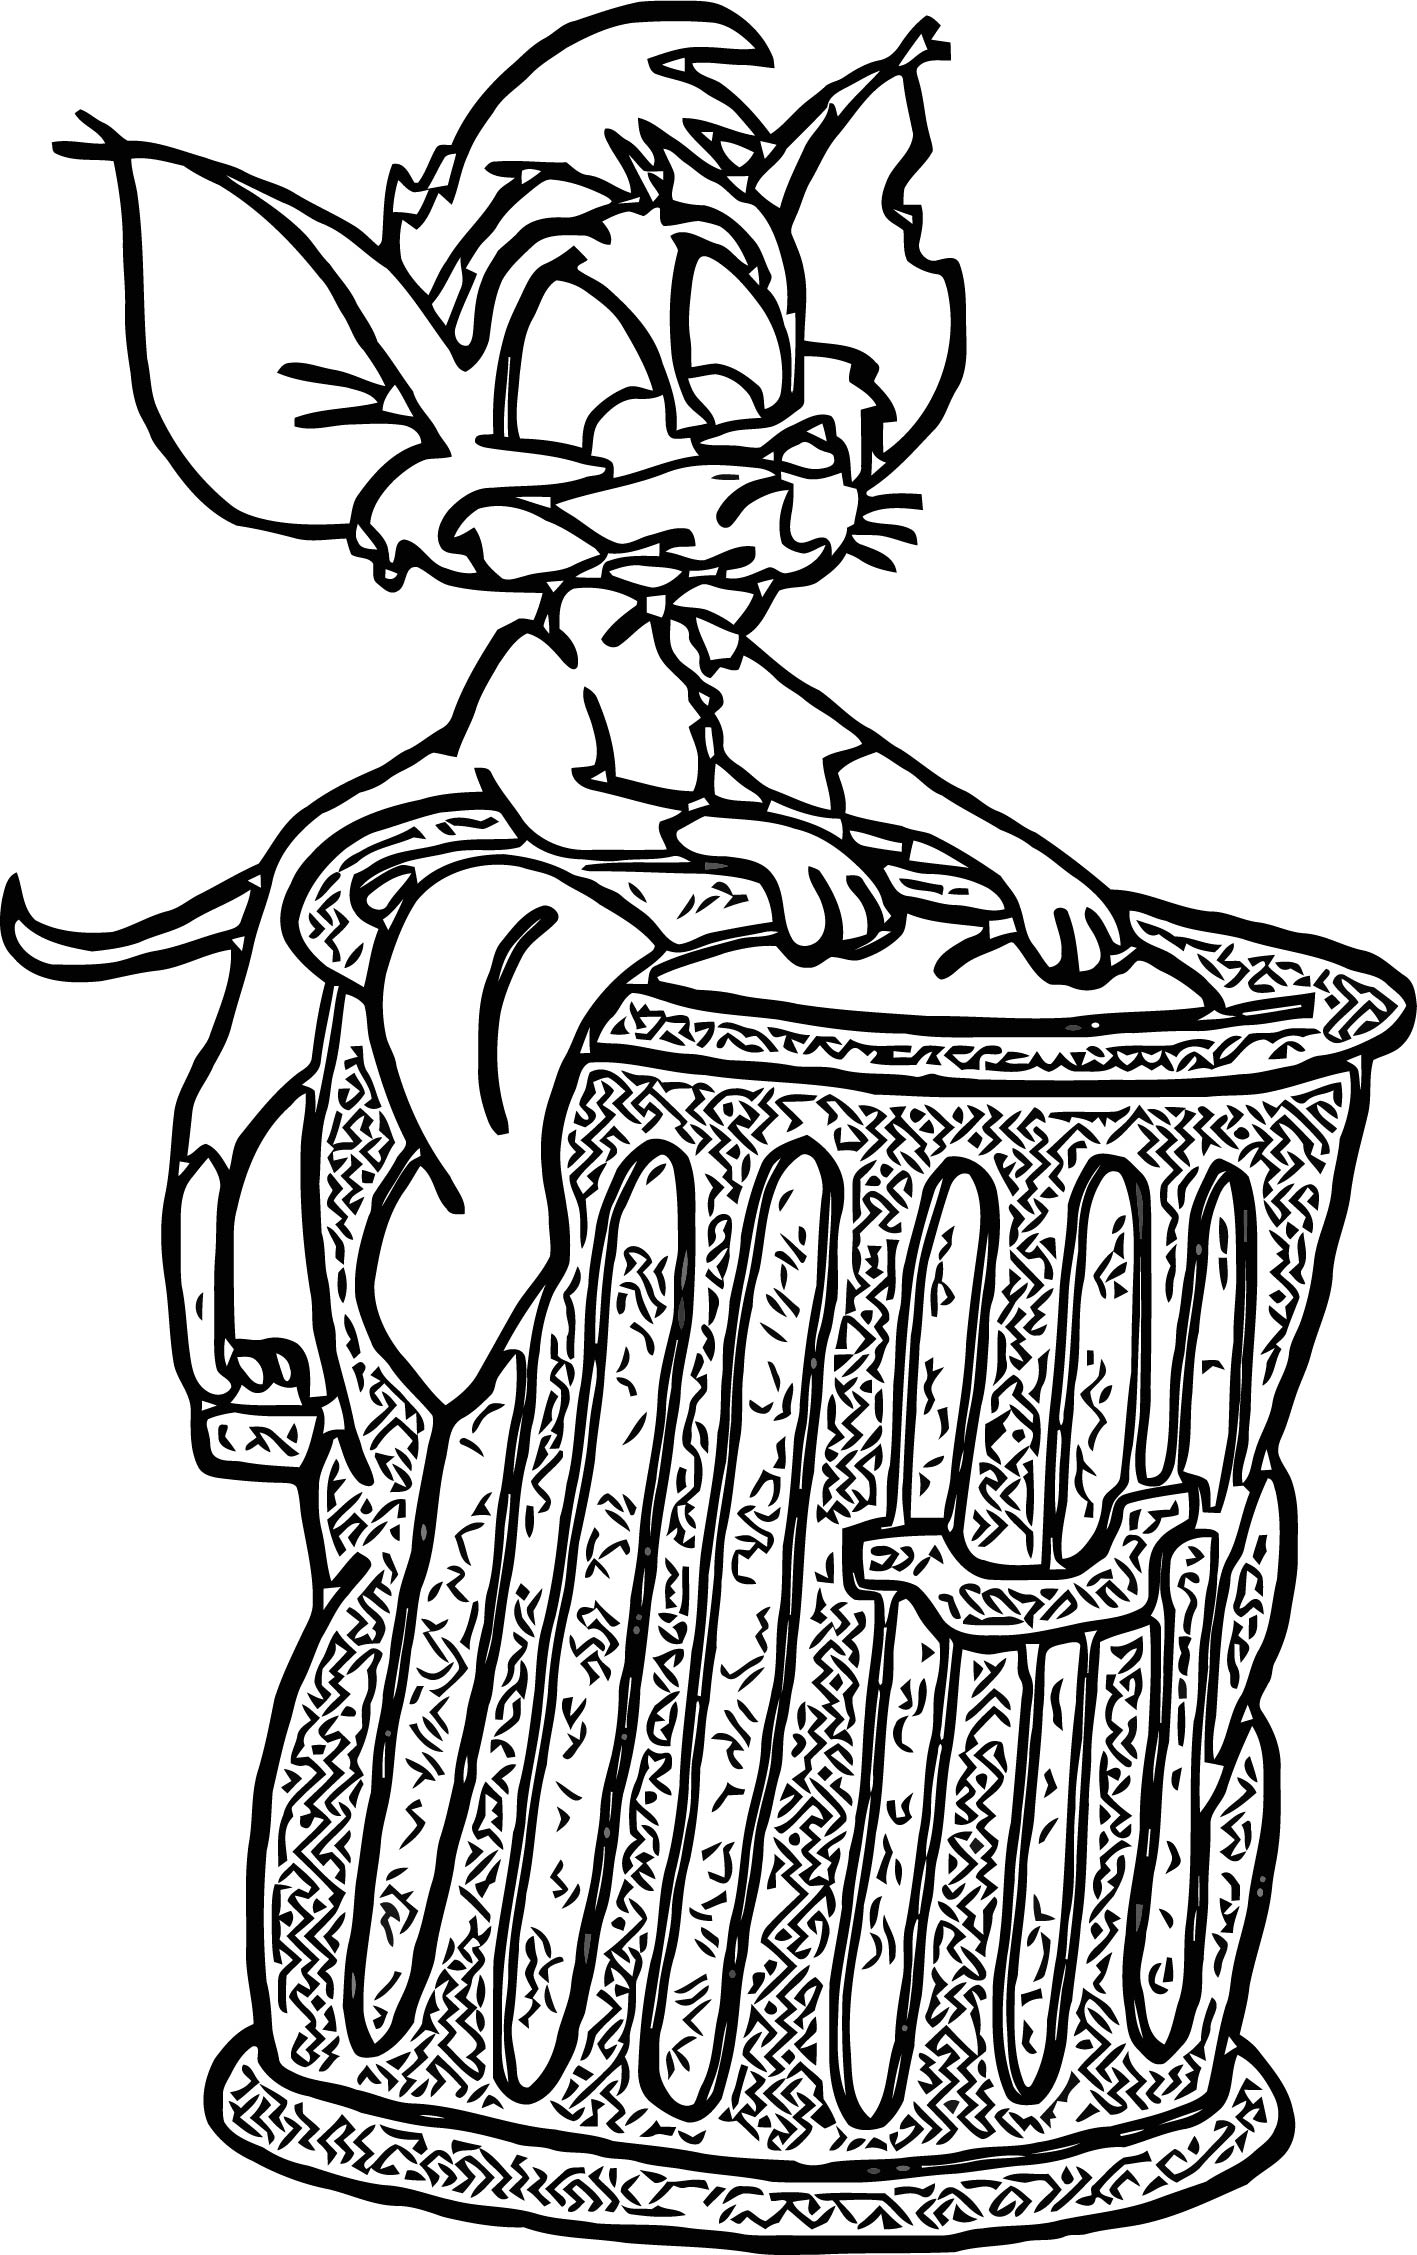 Tito Dog 1 Coloring Pages